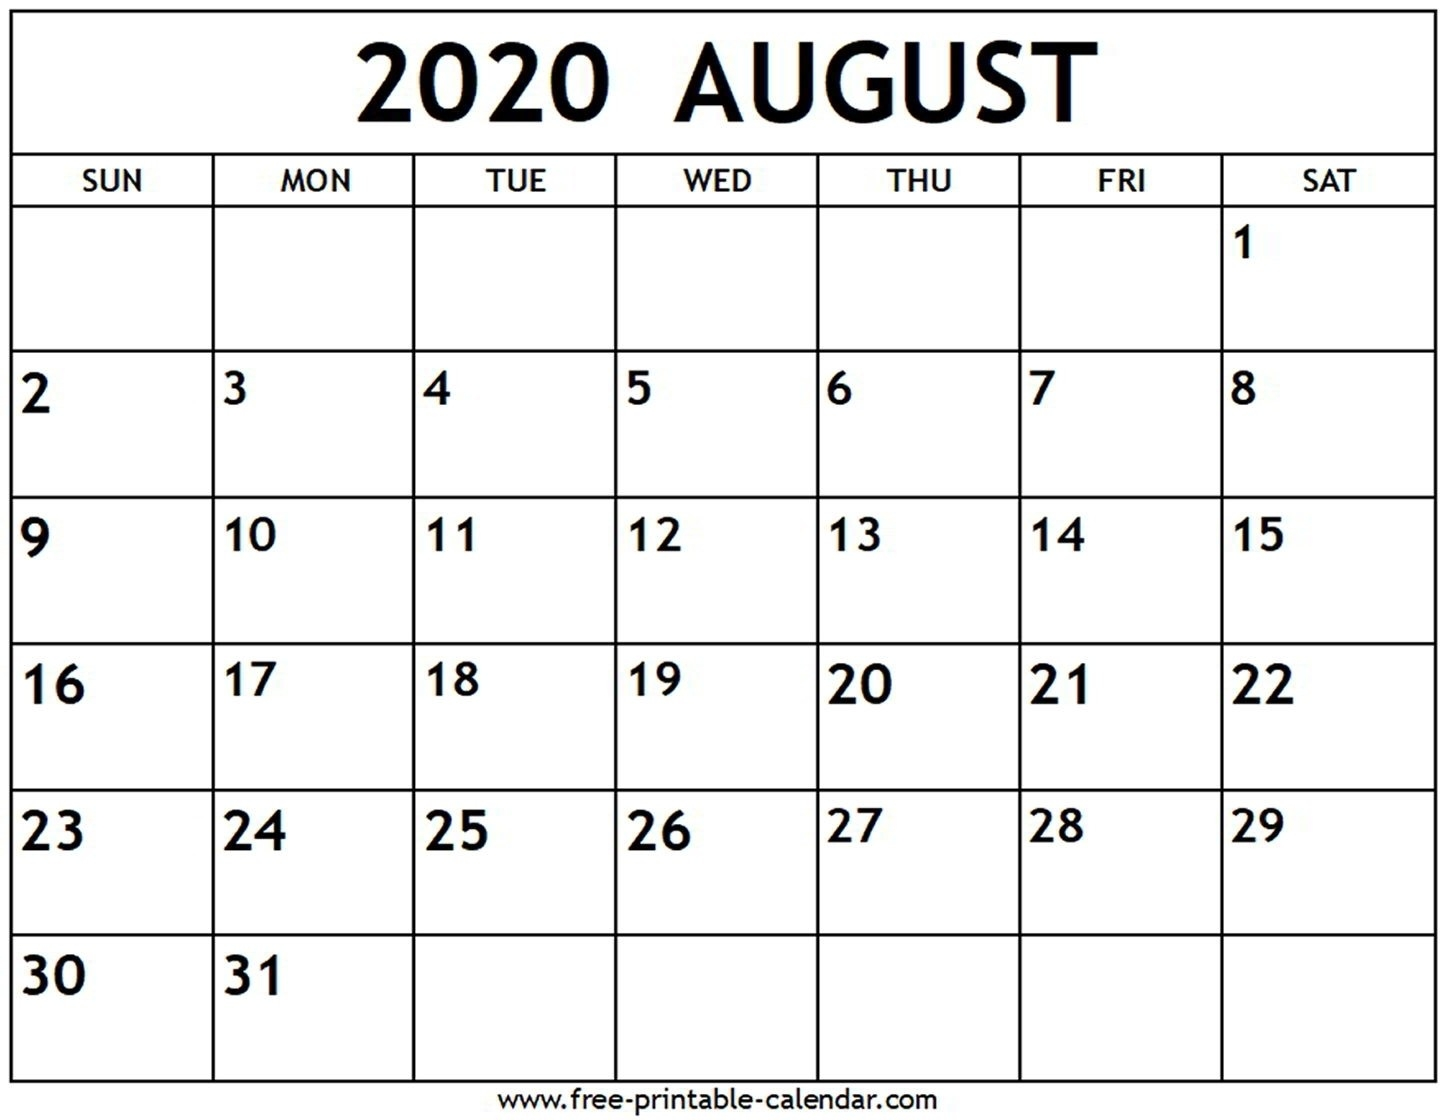 A Monthly Calander For June July August 2020 | Monthly-Monthly Calendar June July August 2020